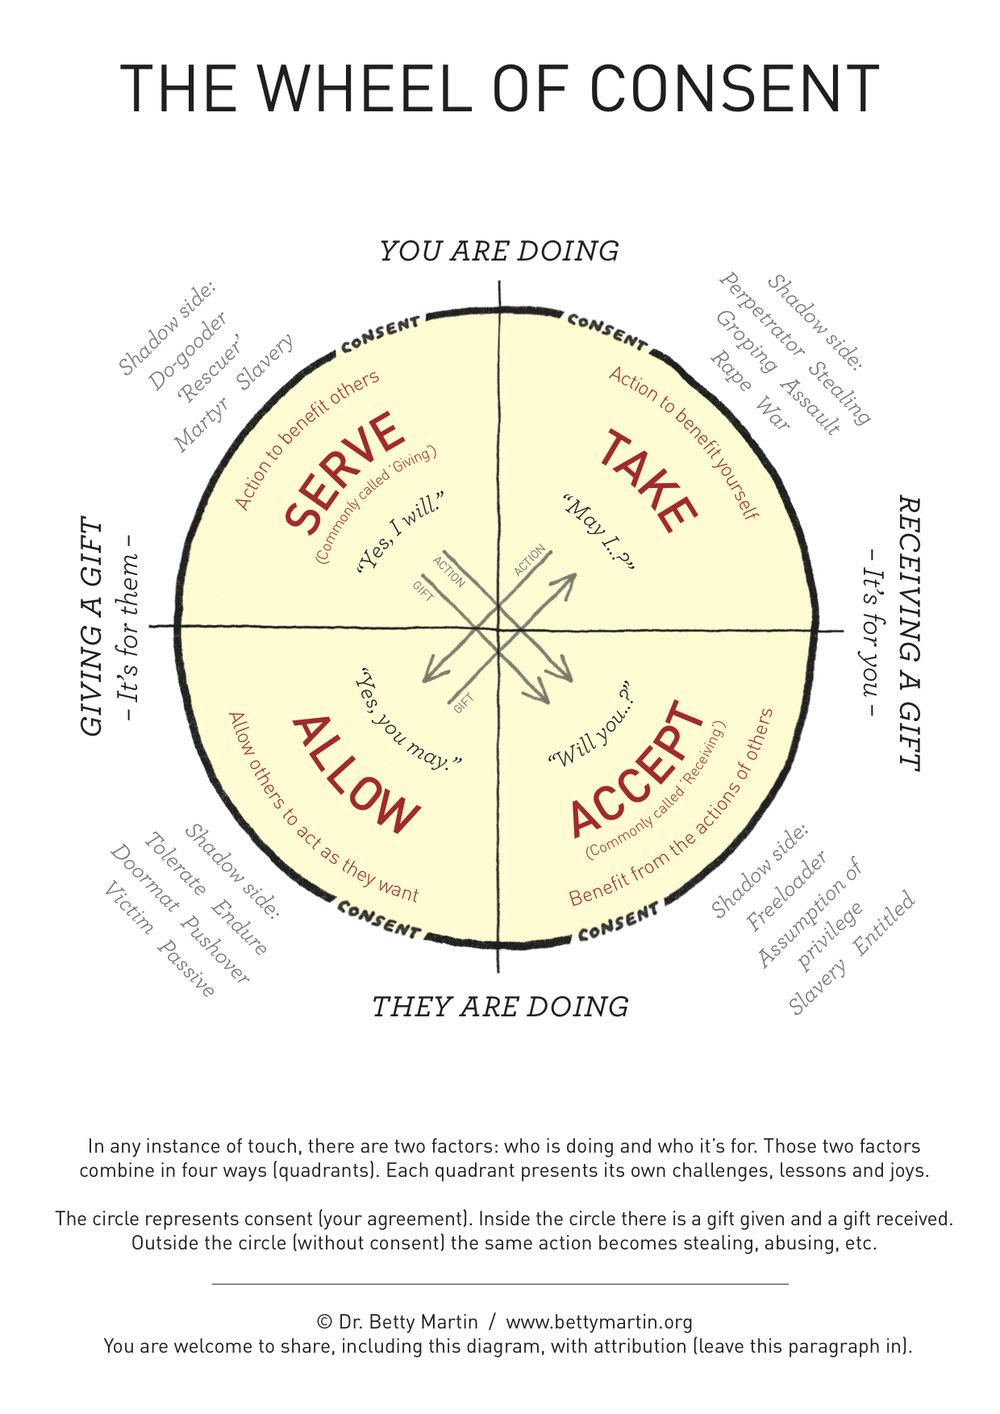 Sanjay understands The Wheel of Consent and is great in giving women orgasms in Tantra, Yoni, increasing women's sexual pleasure.